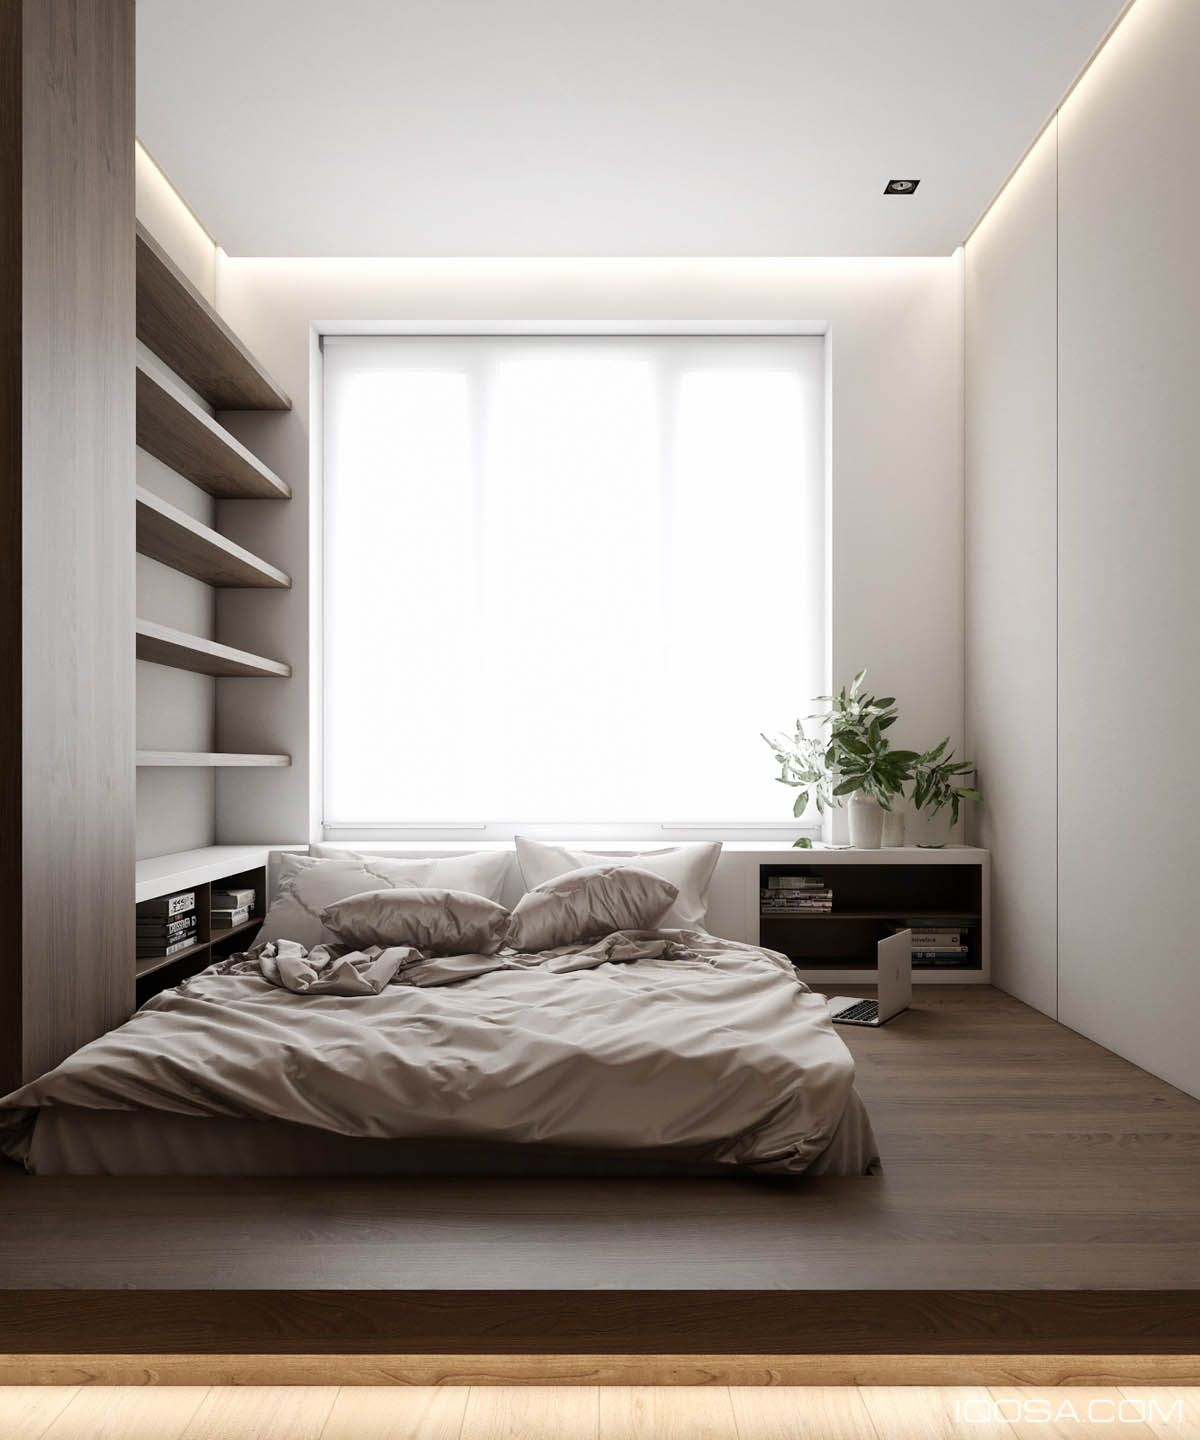 Home Design Under 60 Square Meters: 3 Examples That ...